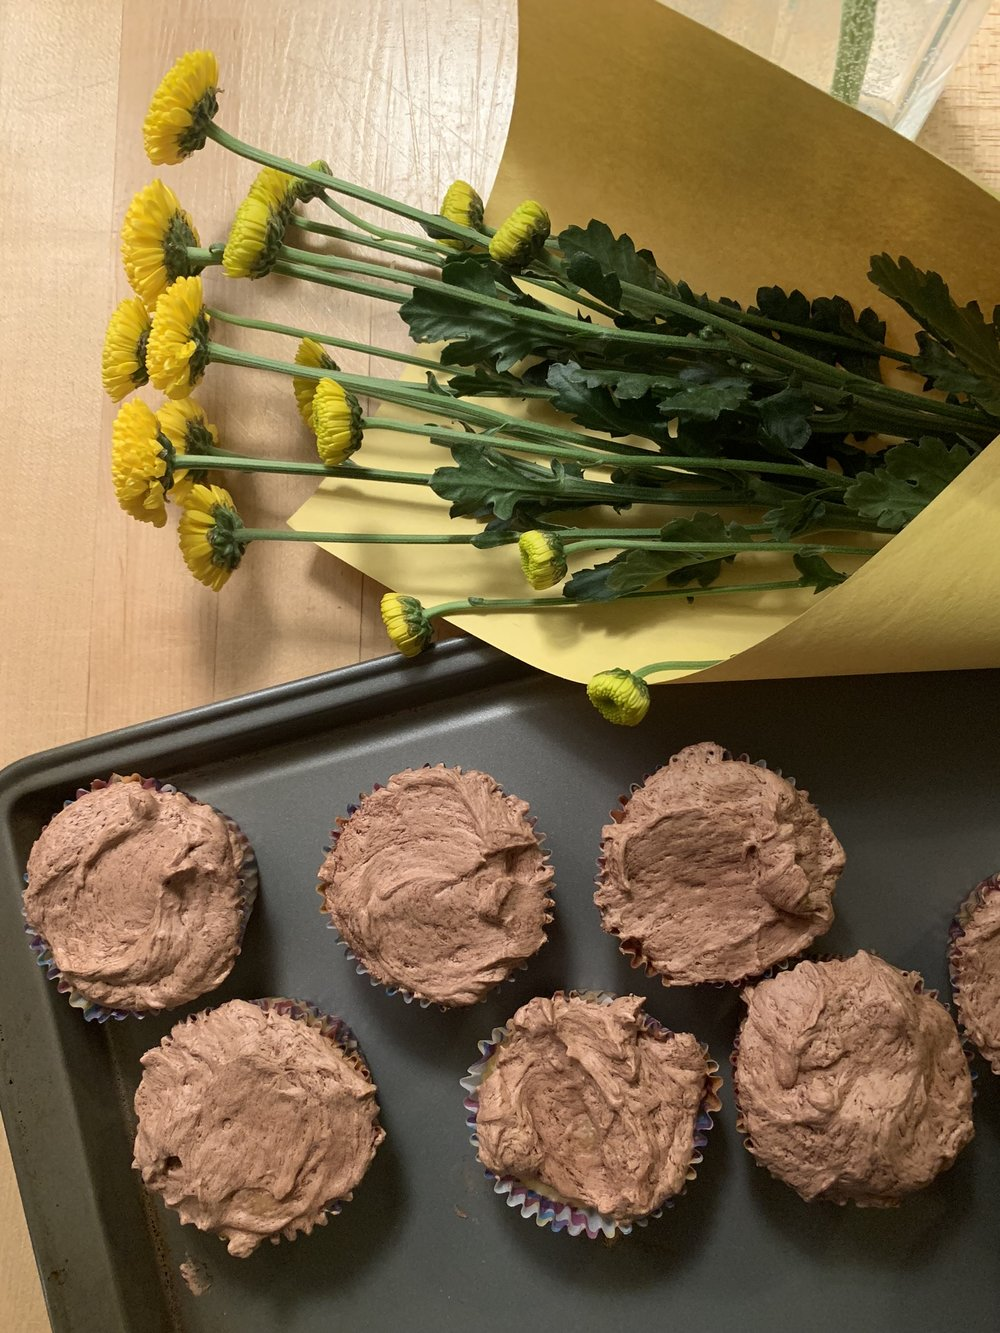 Homemade cupcakes, homemade chocolate frosting and happy yellow flowers that we gave to our neighbors in our building.